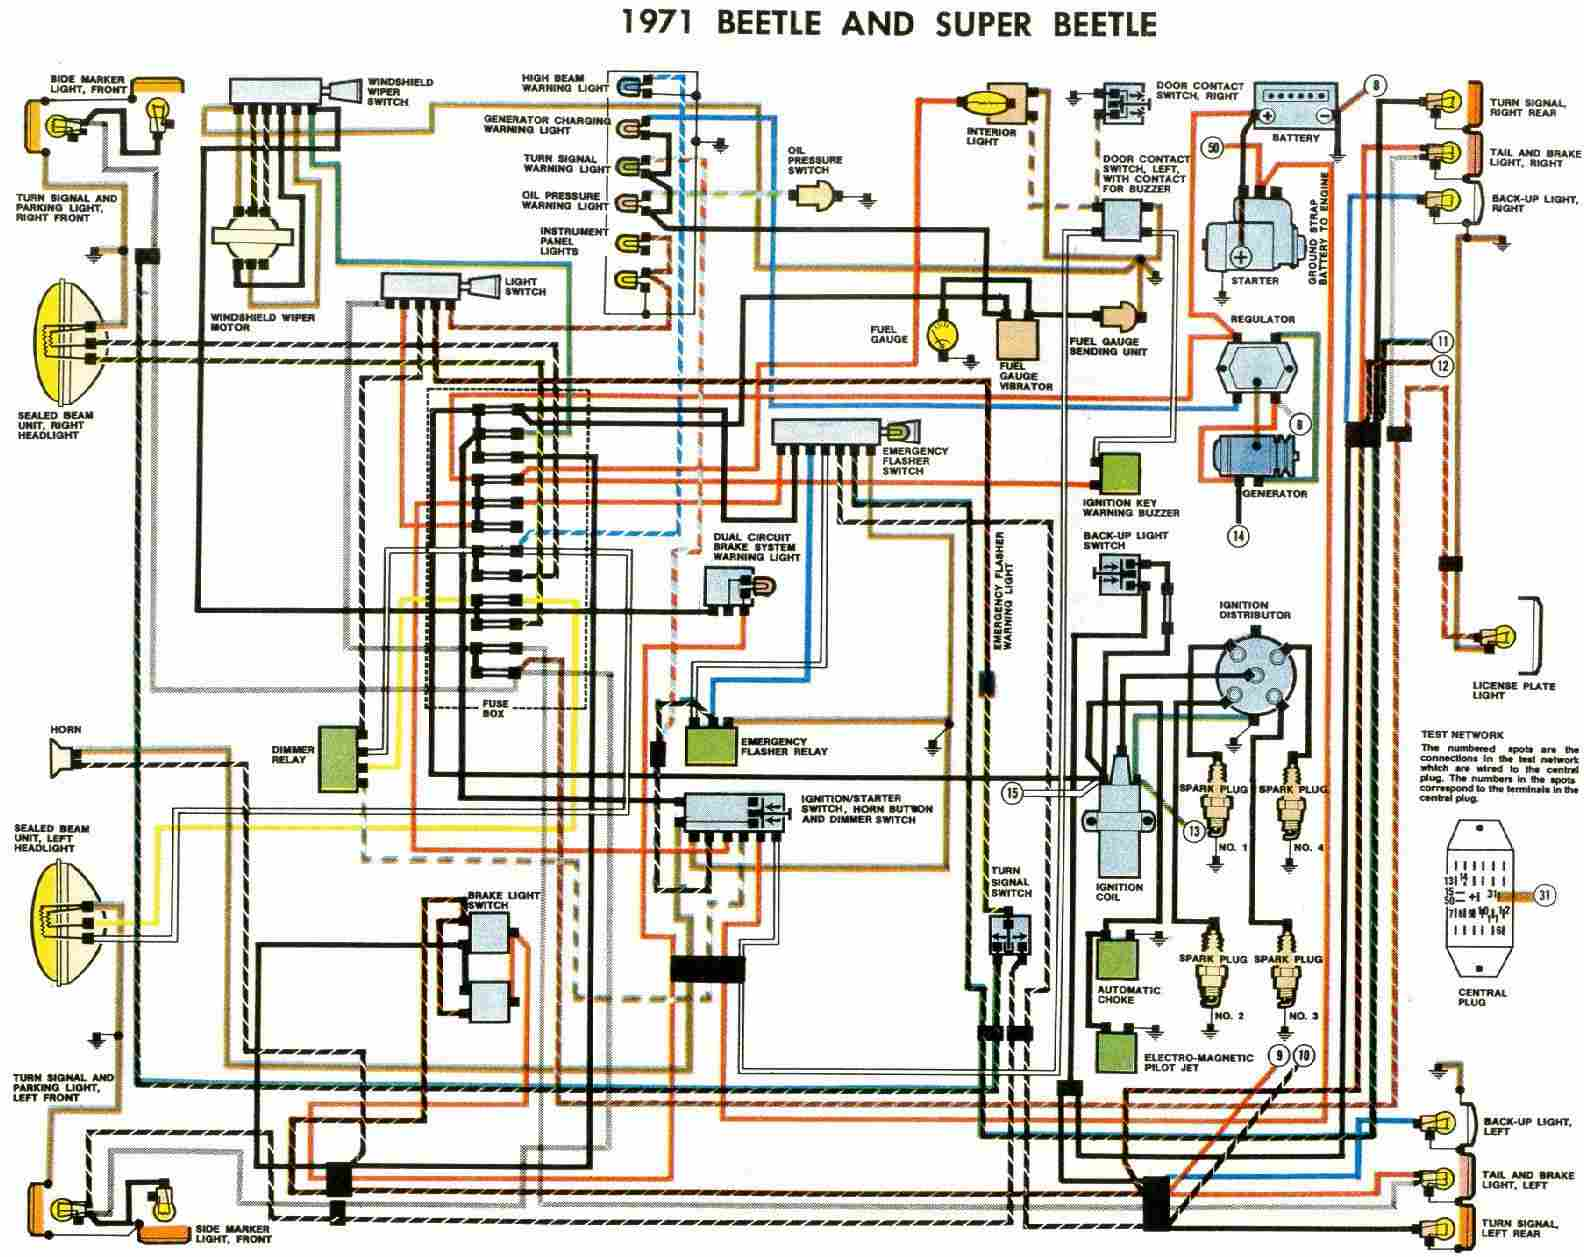 R1 Wire Diagram Buggy List Of Schematic Circuit Wiring Vw Bug Will Be A Thing U2022 Rh Exploreandmore Co Uk